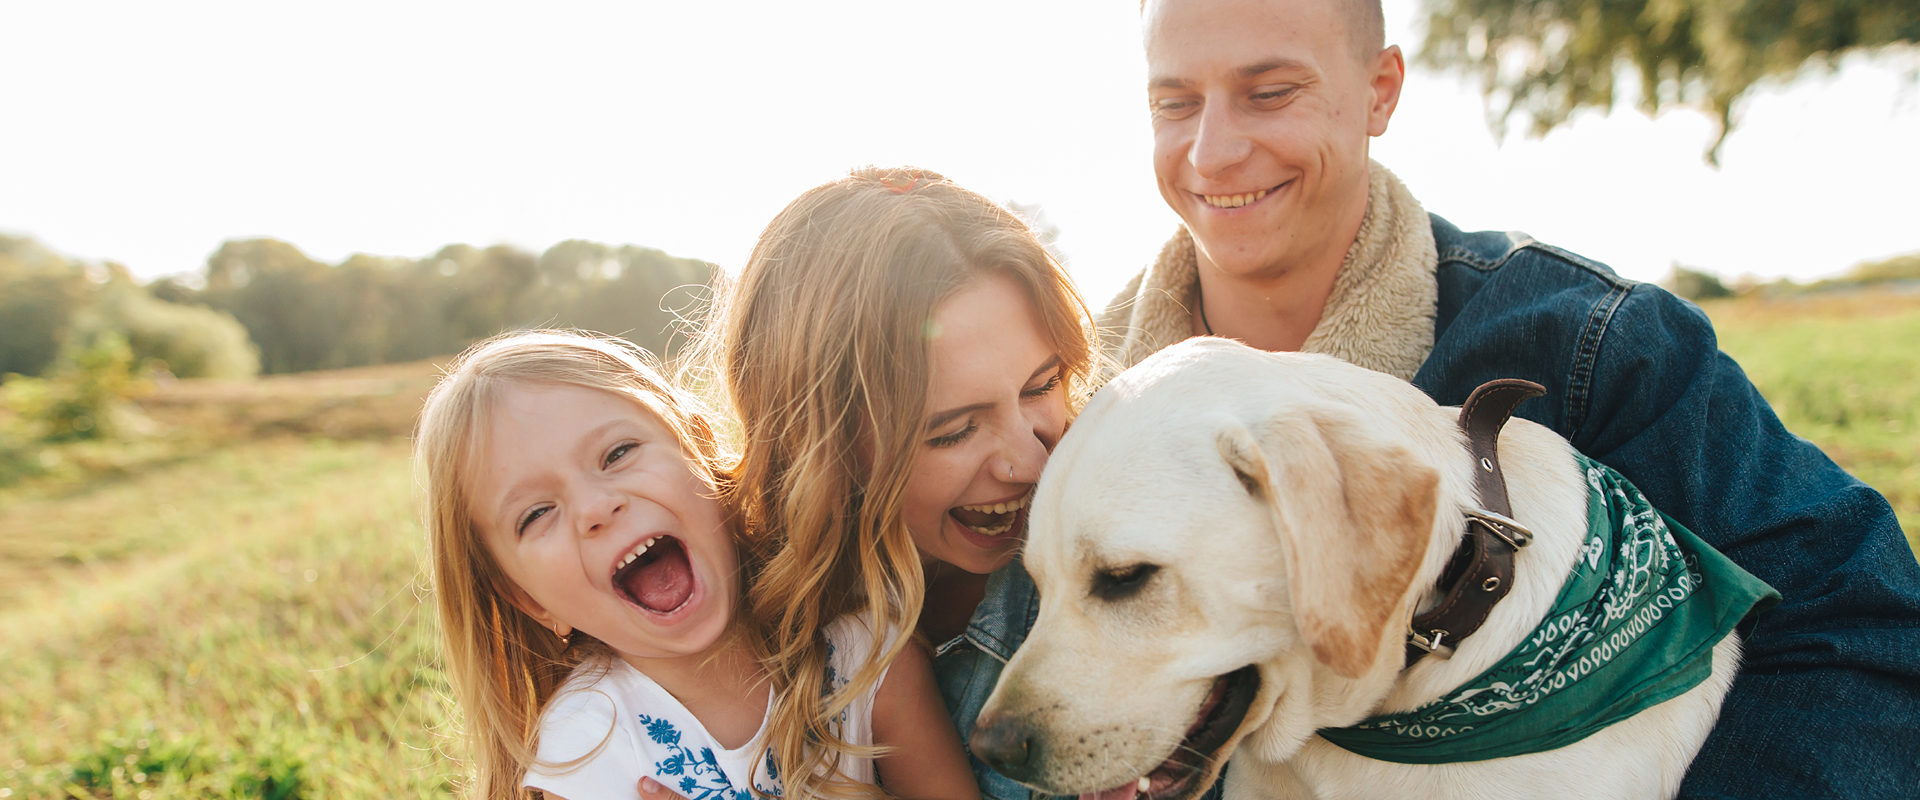 A couple in their thirties with a young girl and dog posing outdoors and laughing